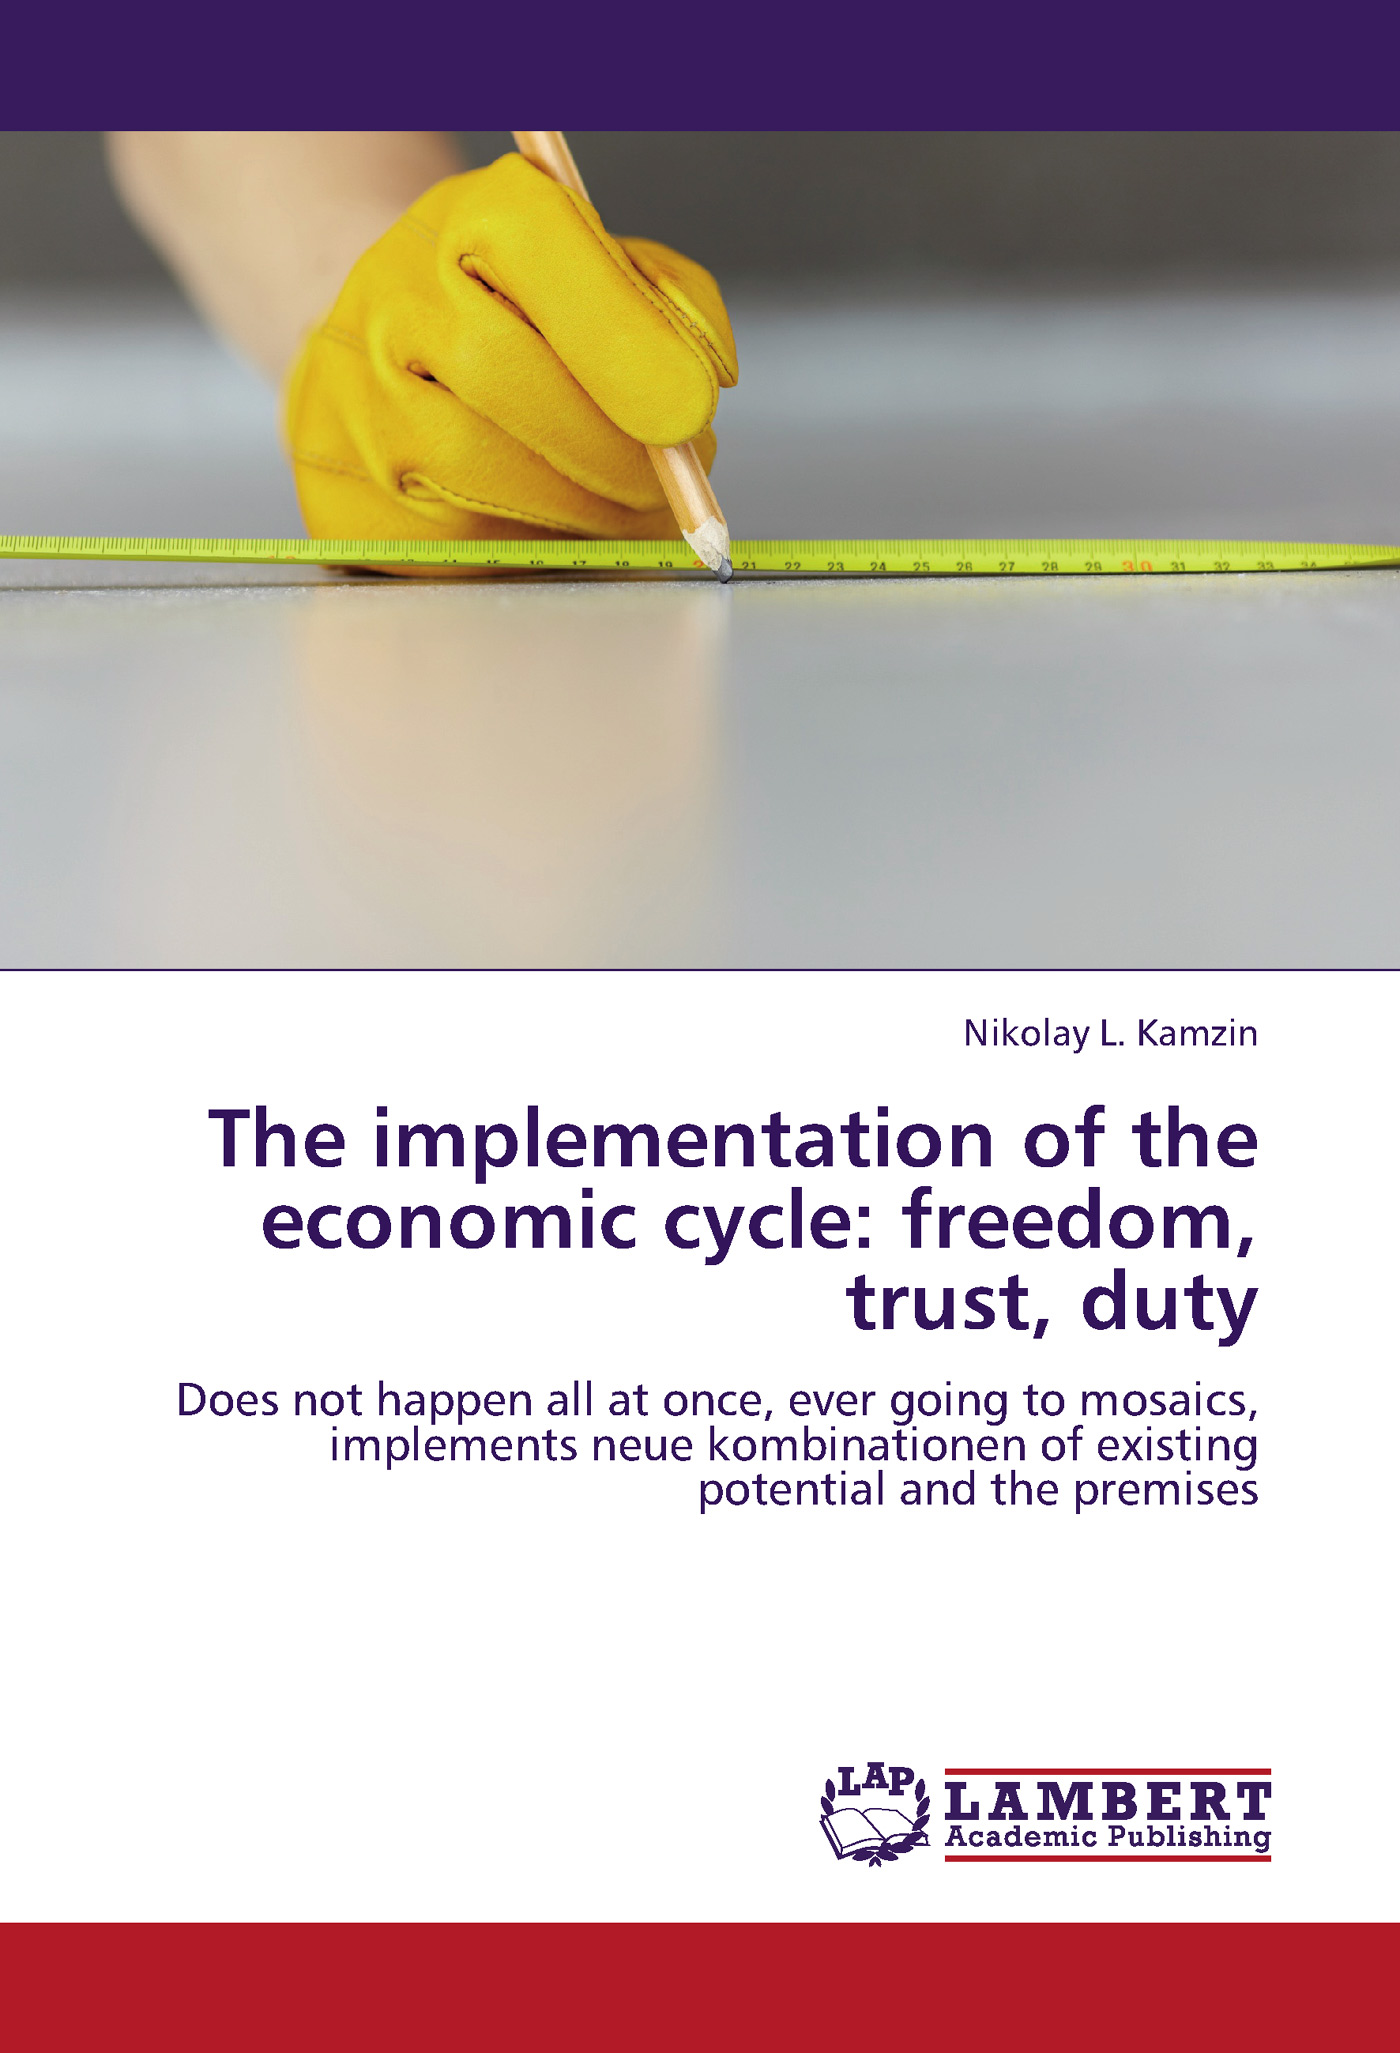 The implementation of the economic cycle: freedom, trust, duty